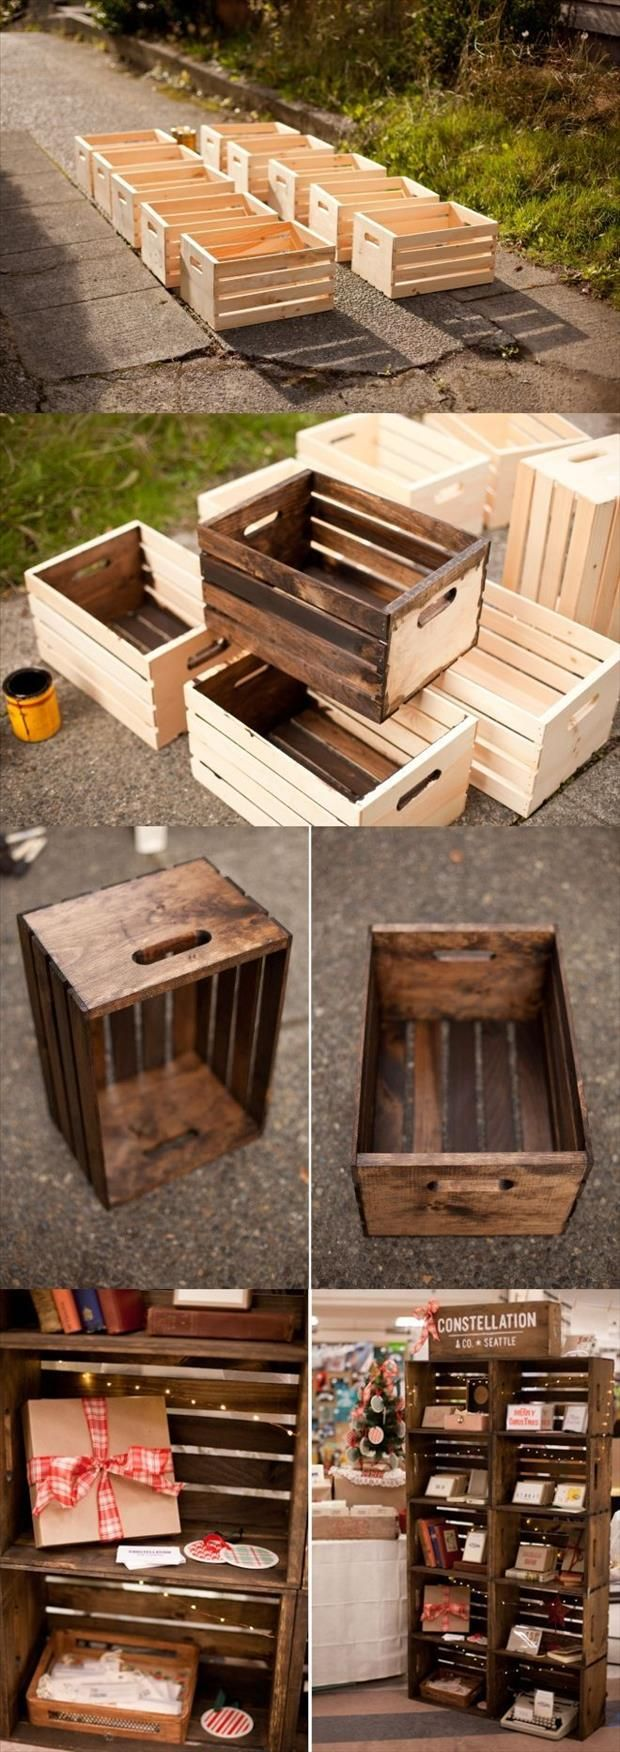 wood decorations for furniture. 29 Ways To Decorate With Wooden Crates Usefuldiyprojects.com Decor Ideas (8) Wood Decorations For Furniture I